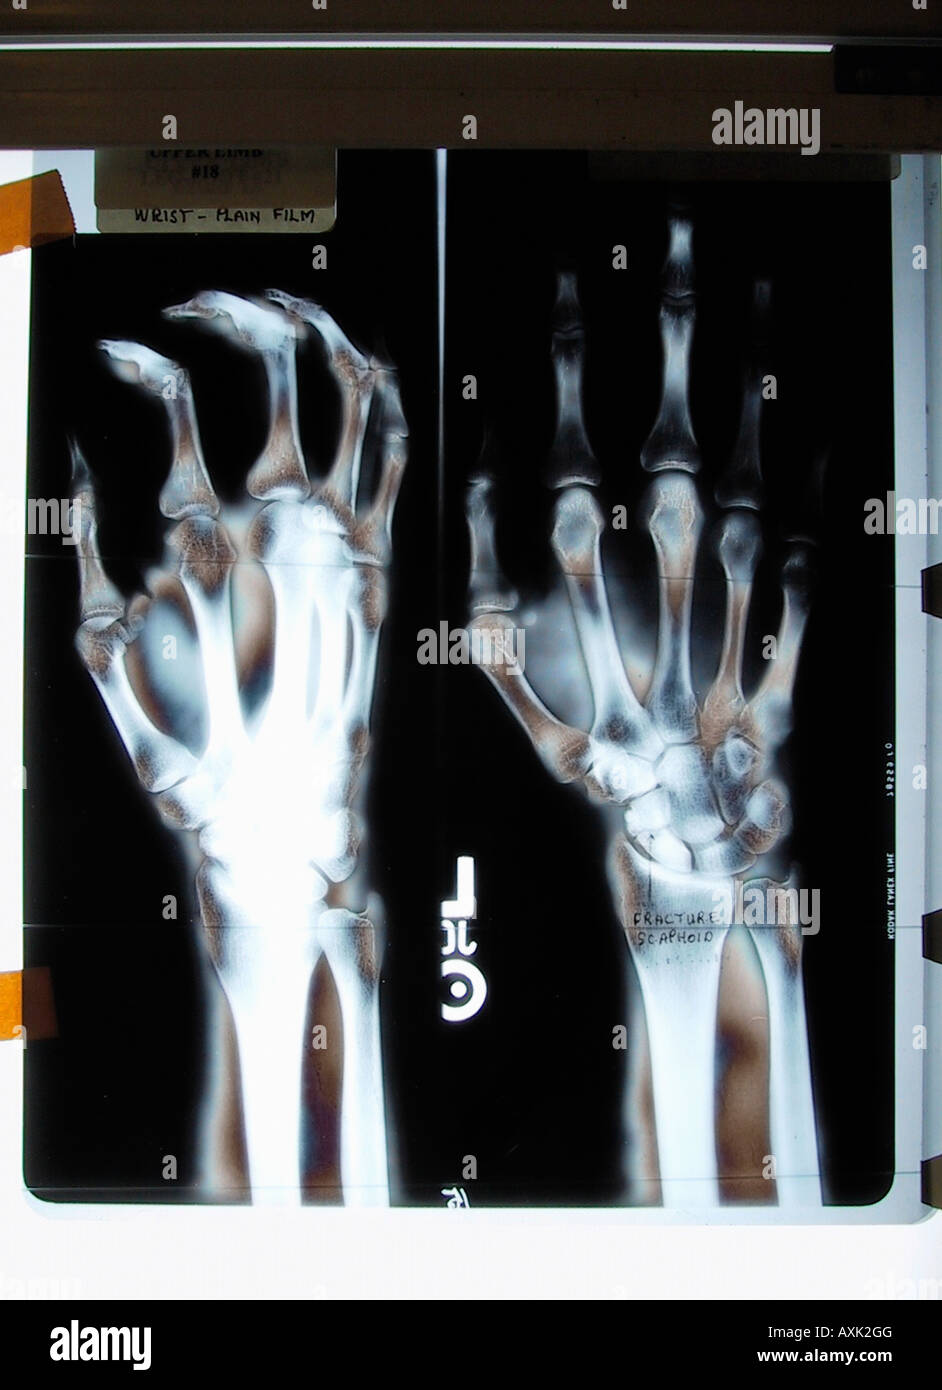 Hand Fracture Stock Photos & Hand Fracture Stock Images - Alamy